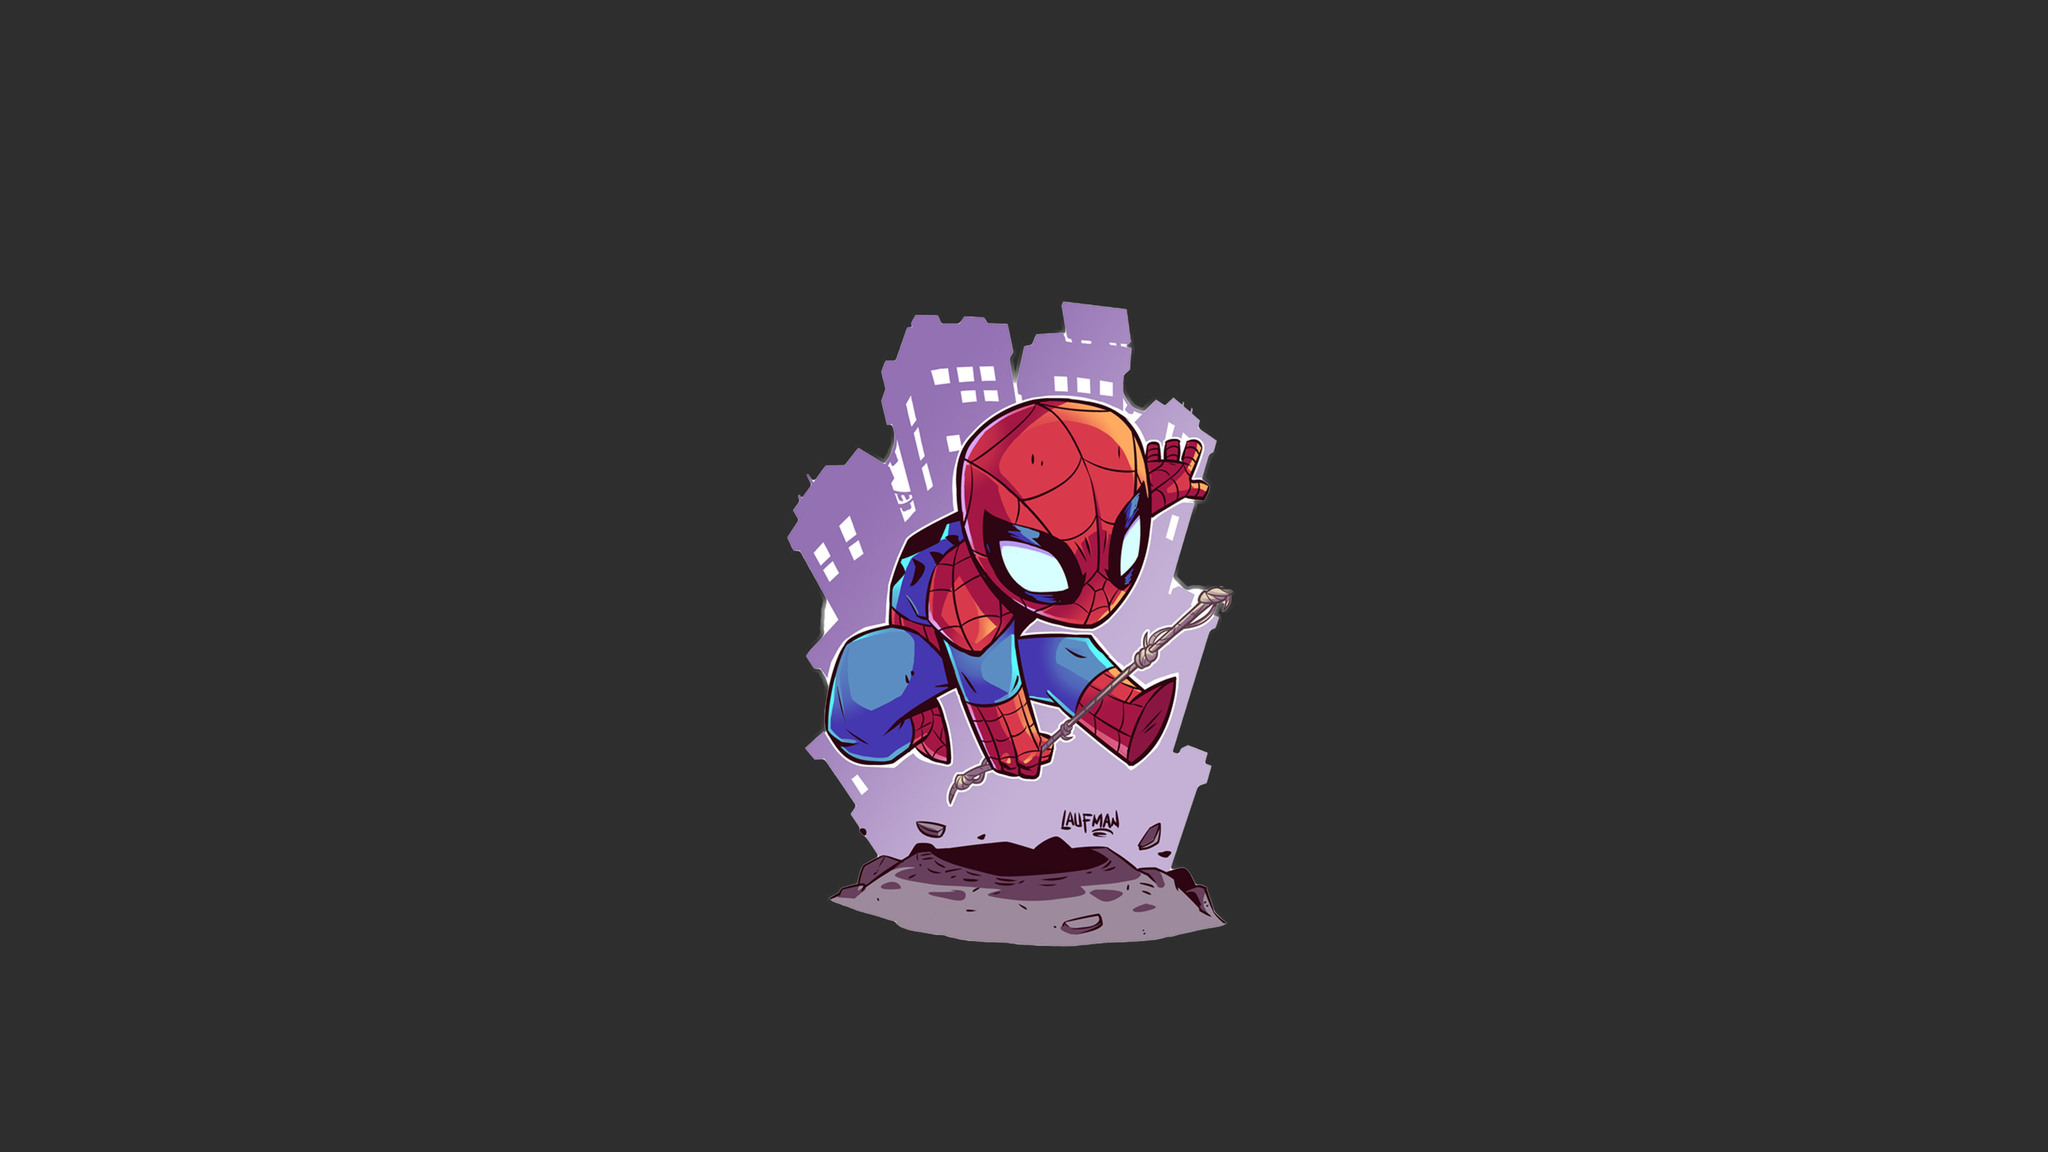 Cute Minimalistic Wallpapers 2048x1152 Spiderman Minimalism 2048x1152 Resolution Hd 4k